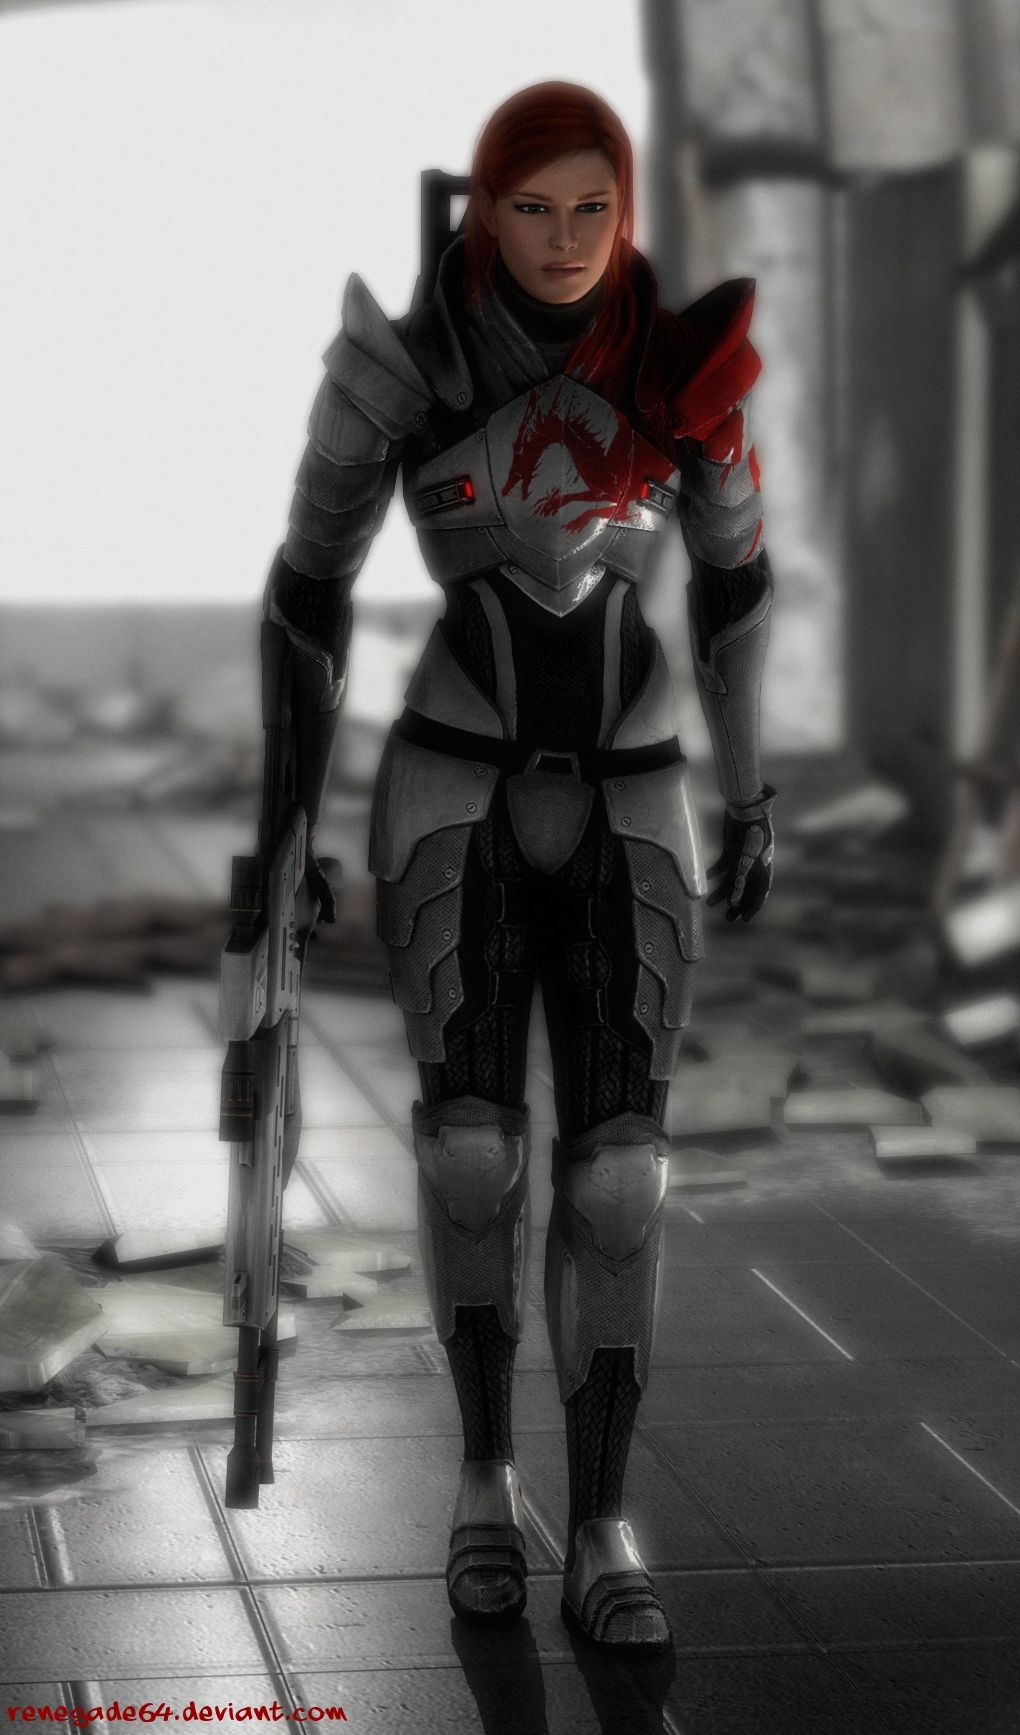 403 Forbidden Mass Effect Characters Mass Effect Dragon Age The tables below show the possible armor outputs (based on the tier of metal) and the bonuses. pinterest